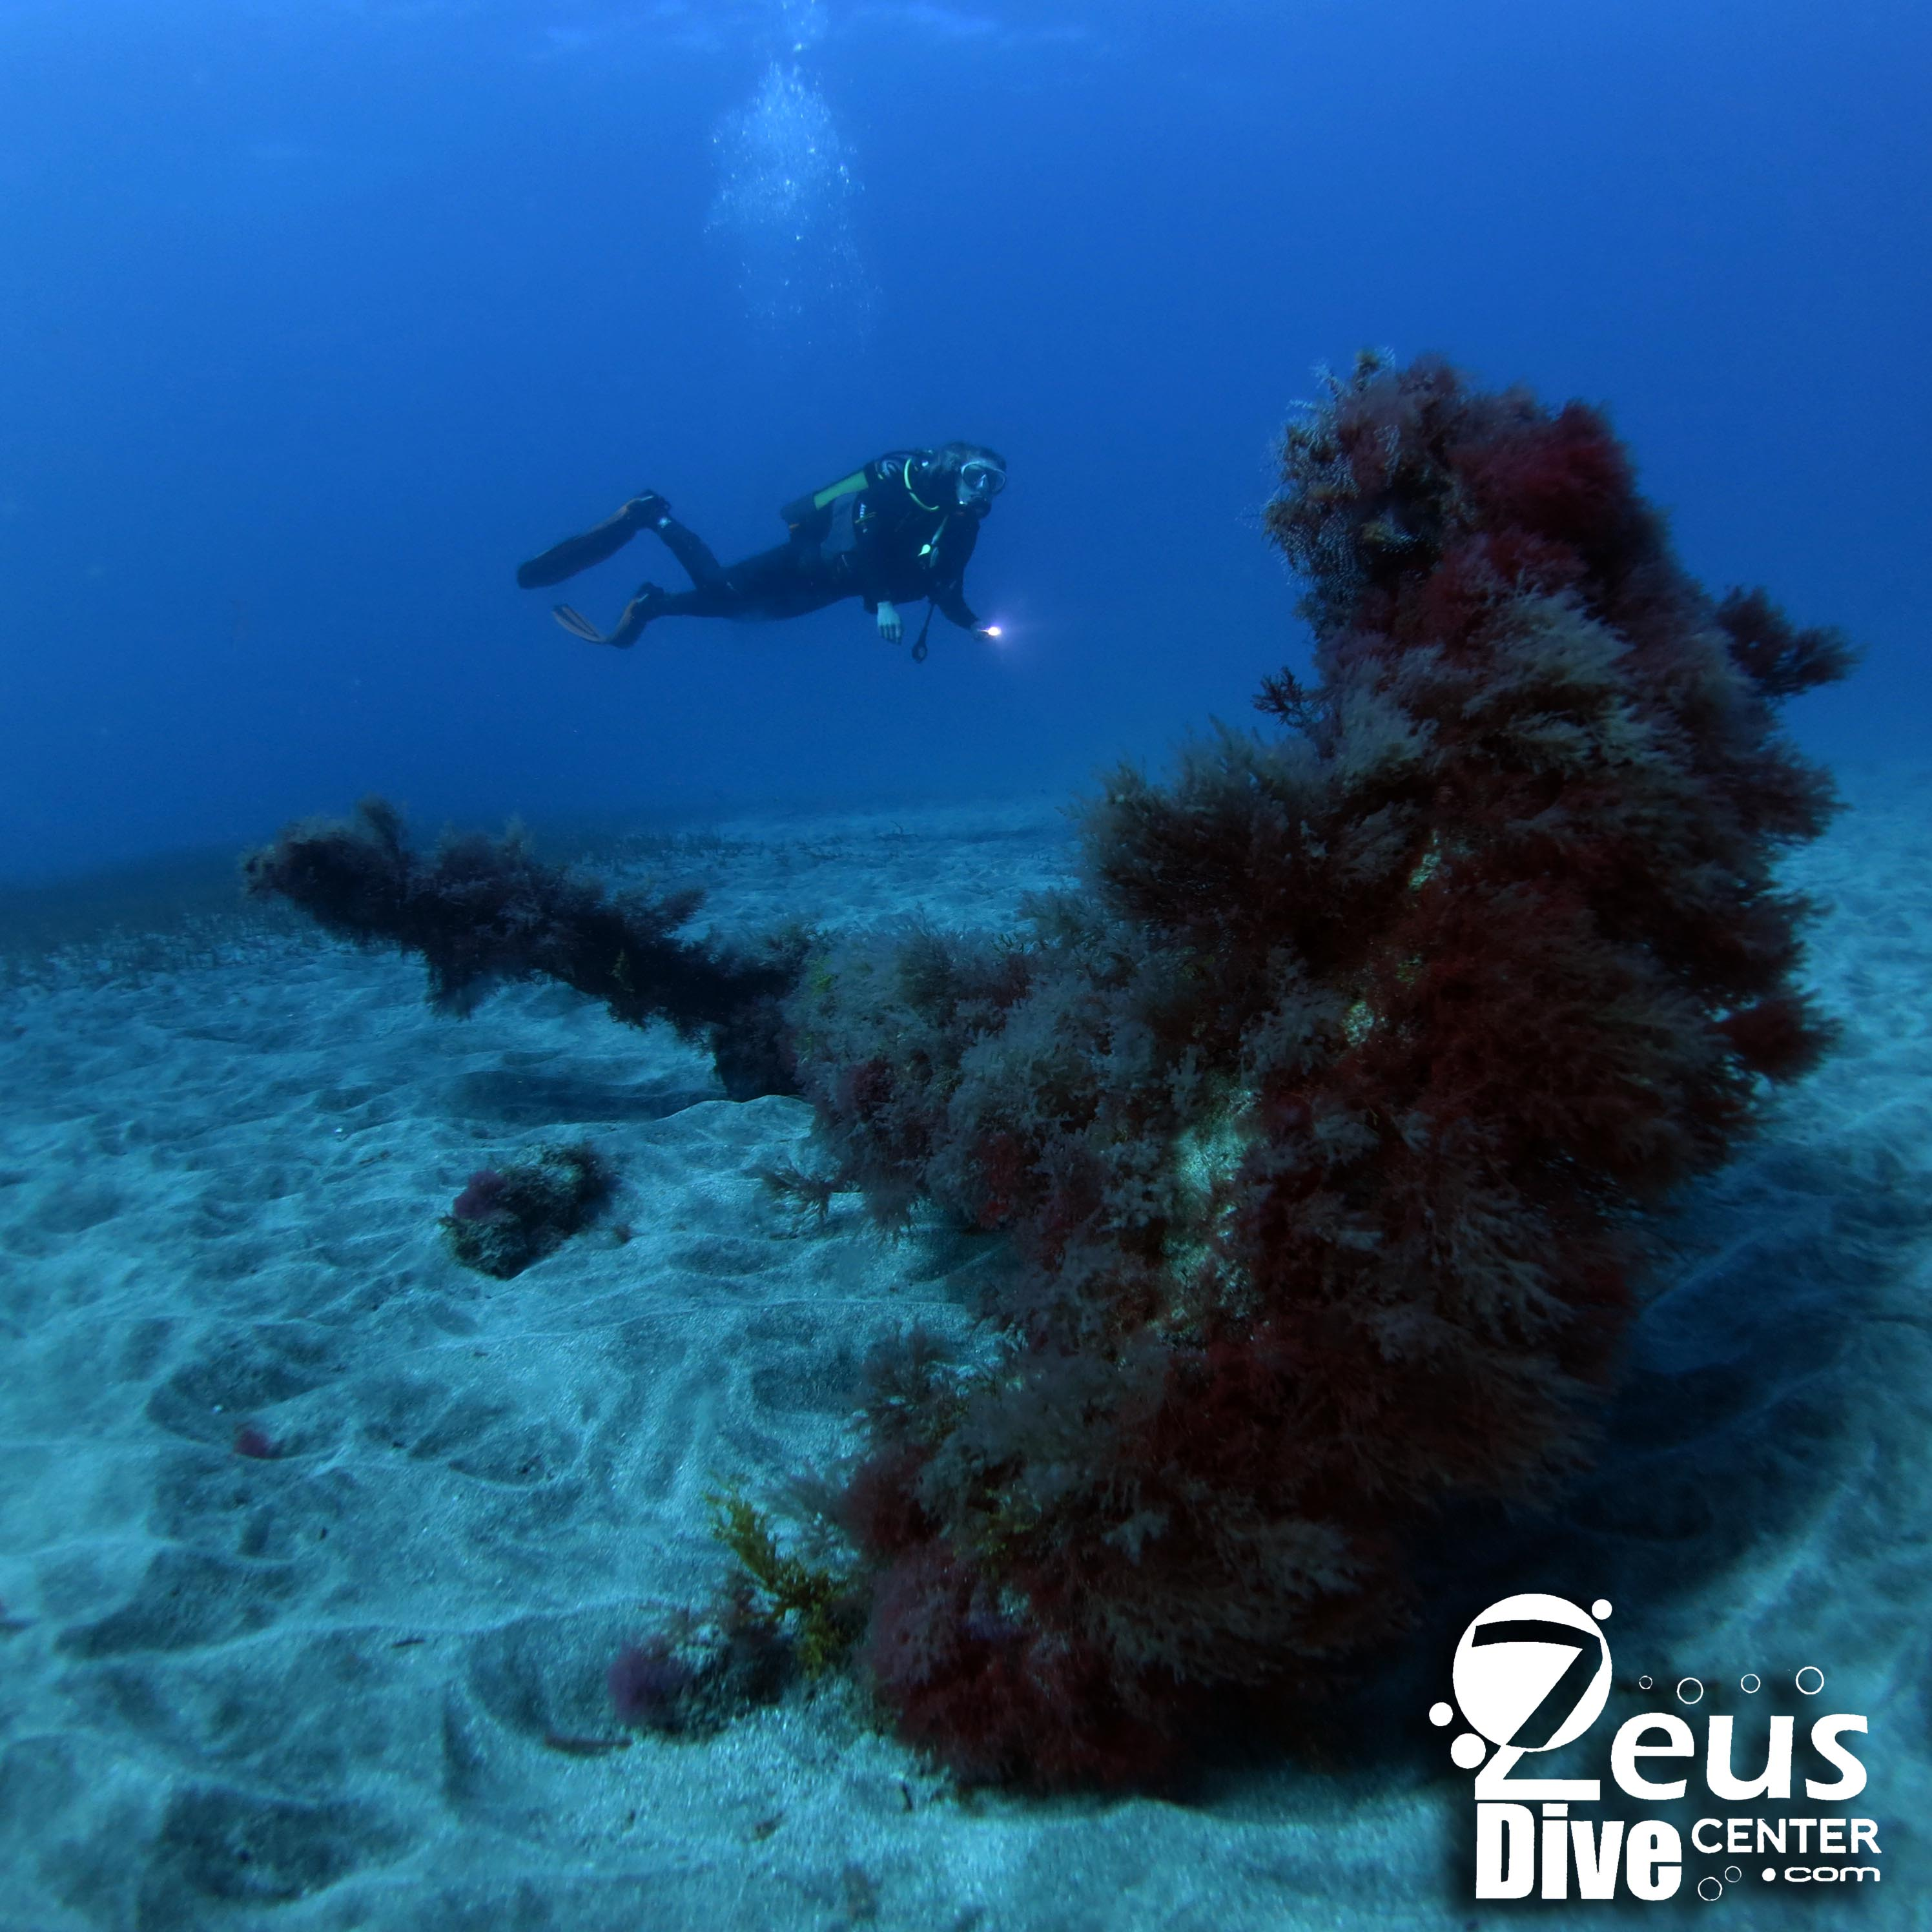 Scuba Dive in Gran Canaria with Zeus Dive Center